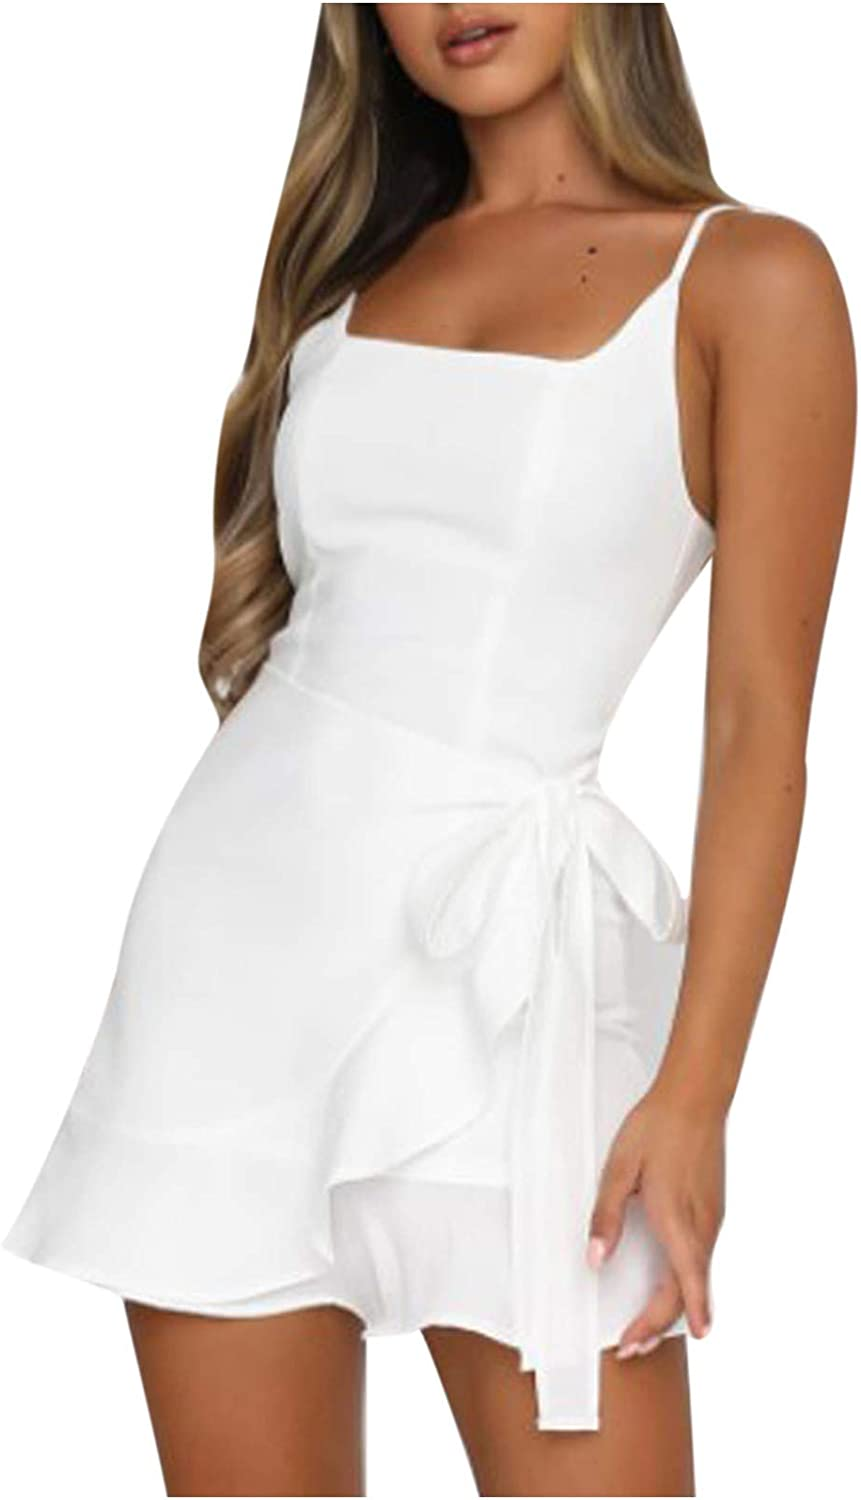 GDHJ Sundresses for Women Casual Beach Solid Color Adjustable Spaghetti Strap Side Ties Ruffled Hem Above Knee Dress